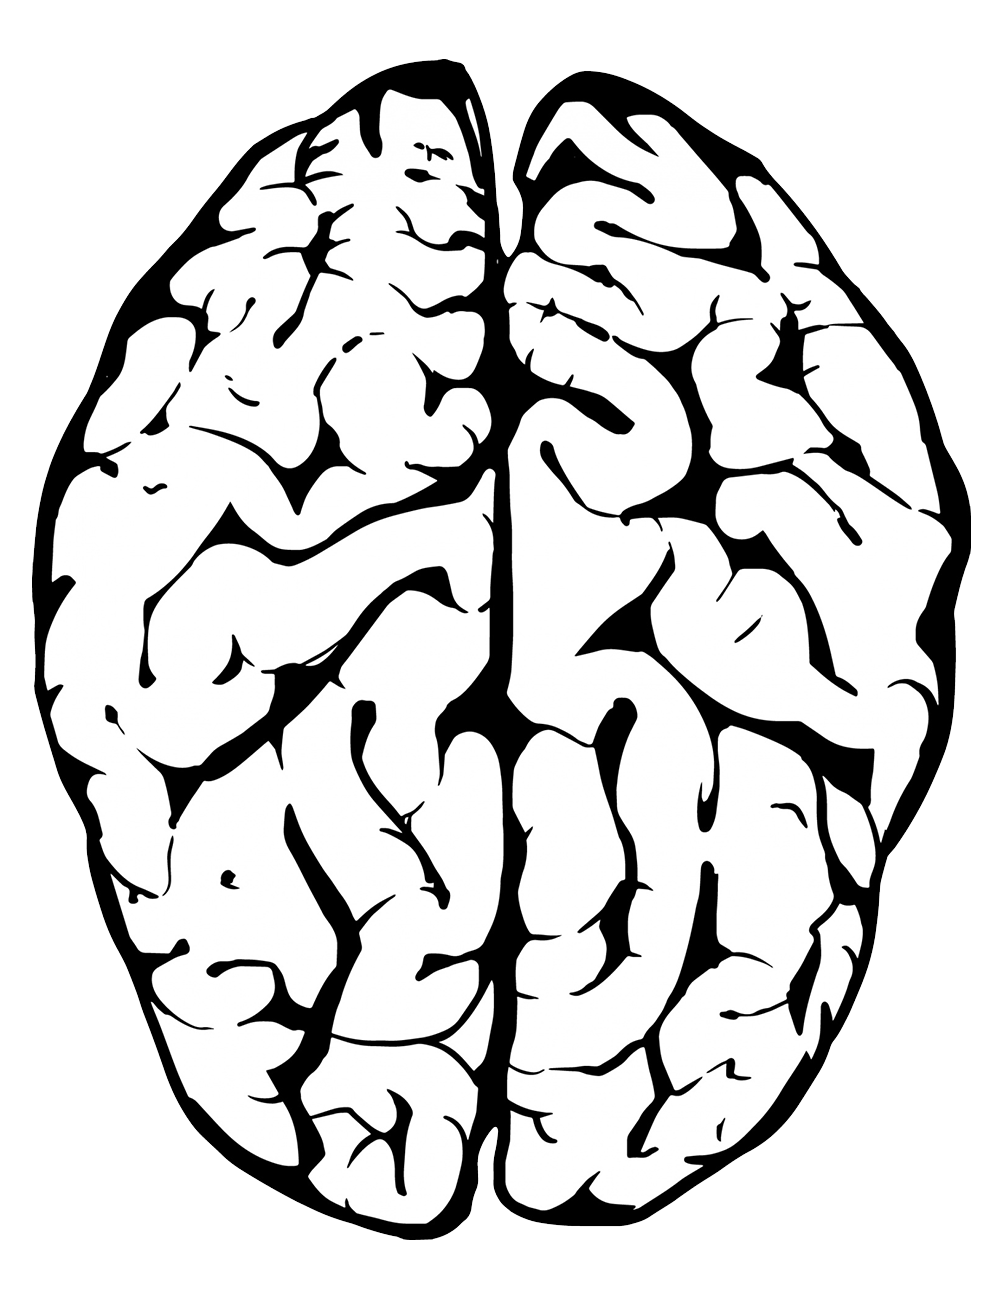 drawing of the human brain